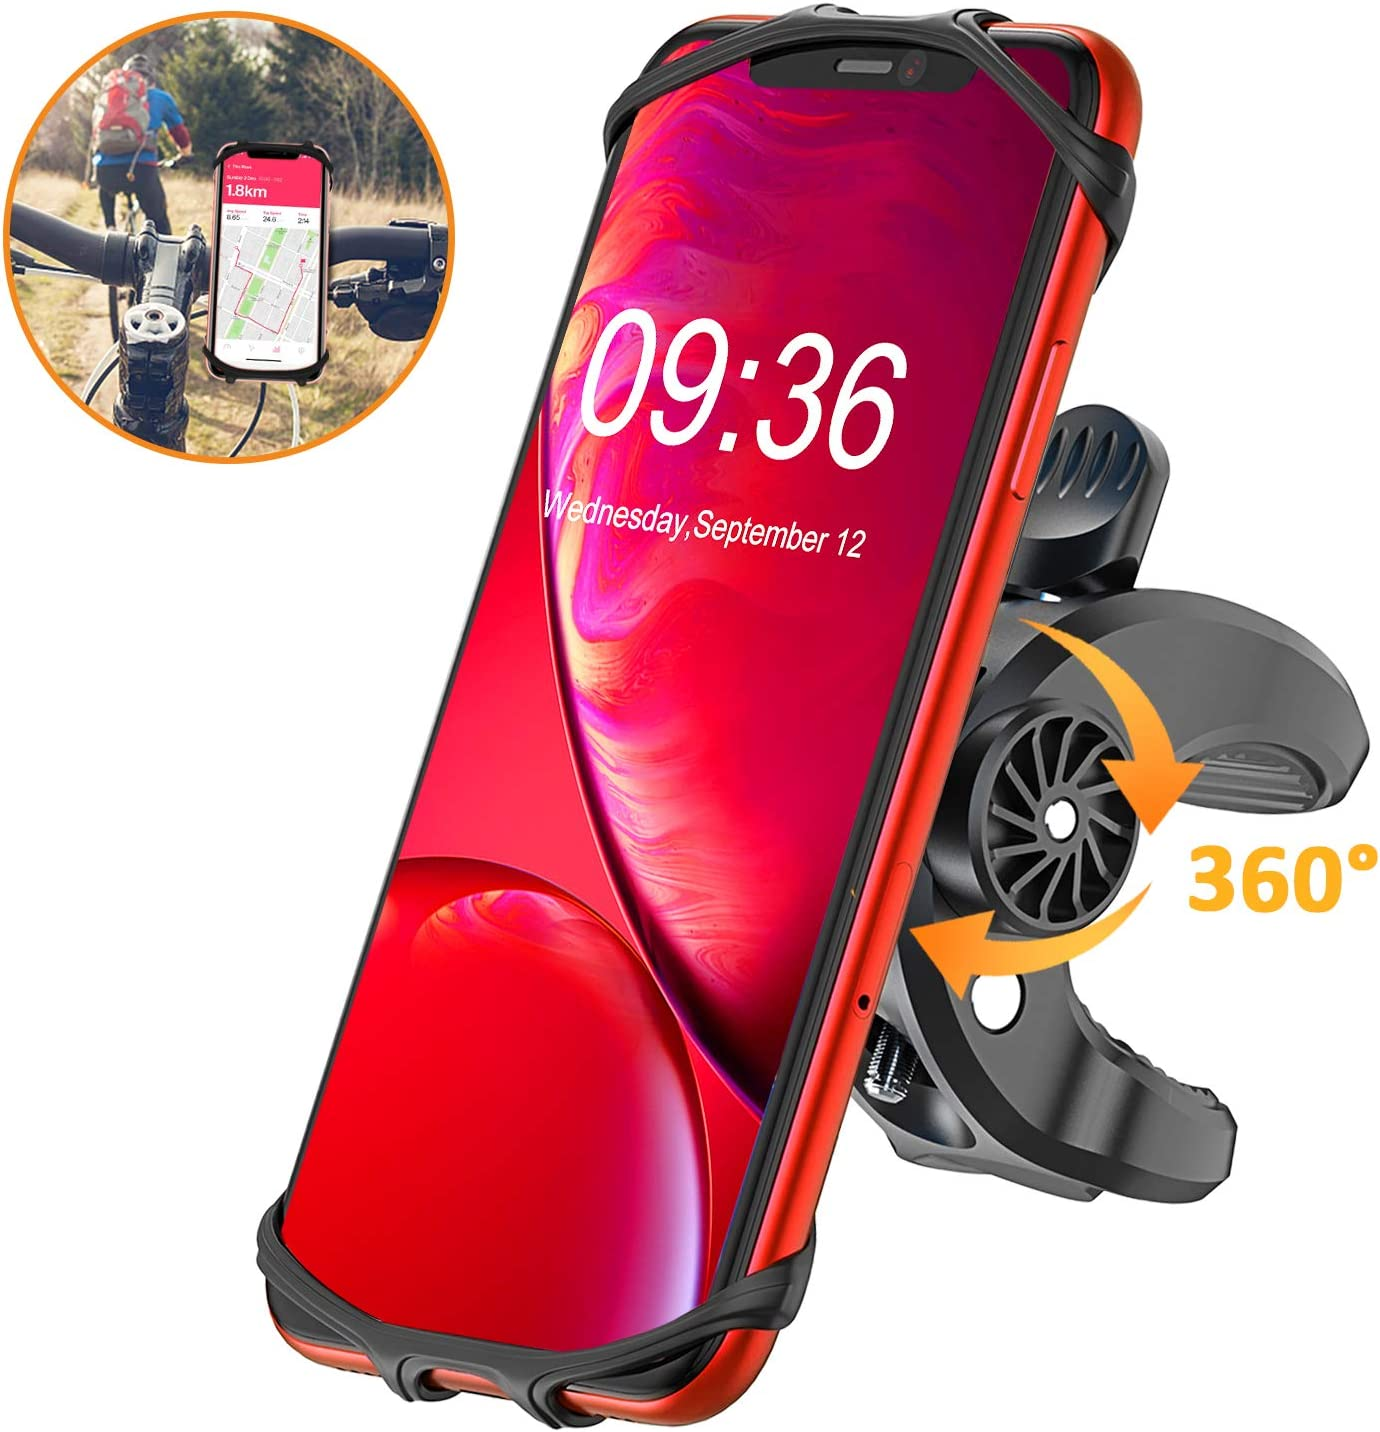 Bike Phone Mount, STOON 360° Rotatable Bicycle Phone Holder with Adjustable Handlebar Mount, Silicone Universal Motorcycle Phone Mount Fit for iPhone 11/XR/XS Max/X, 8/8 Plus, Galaxy S10 Plus/S10/S10e